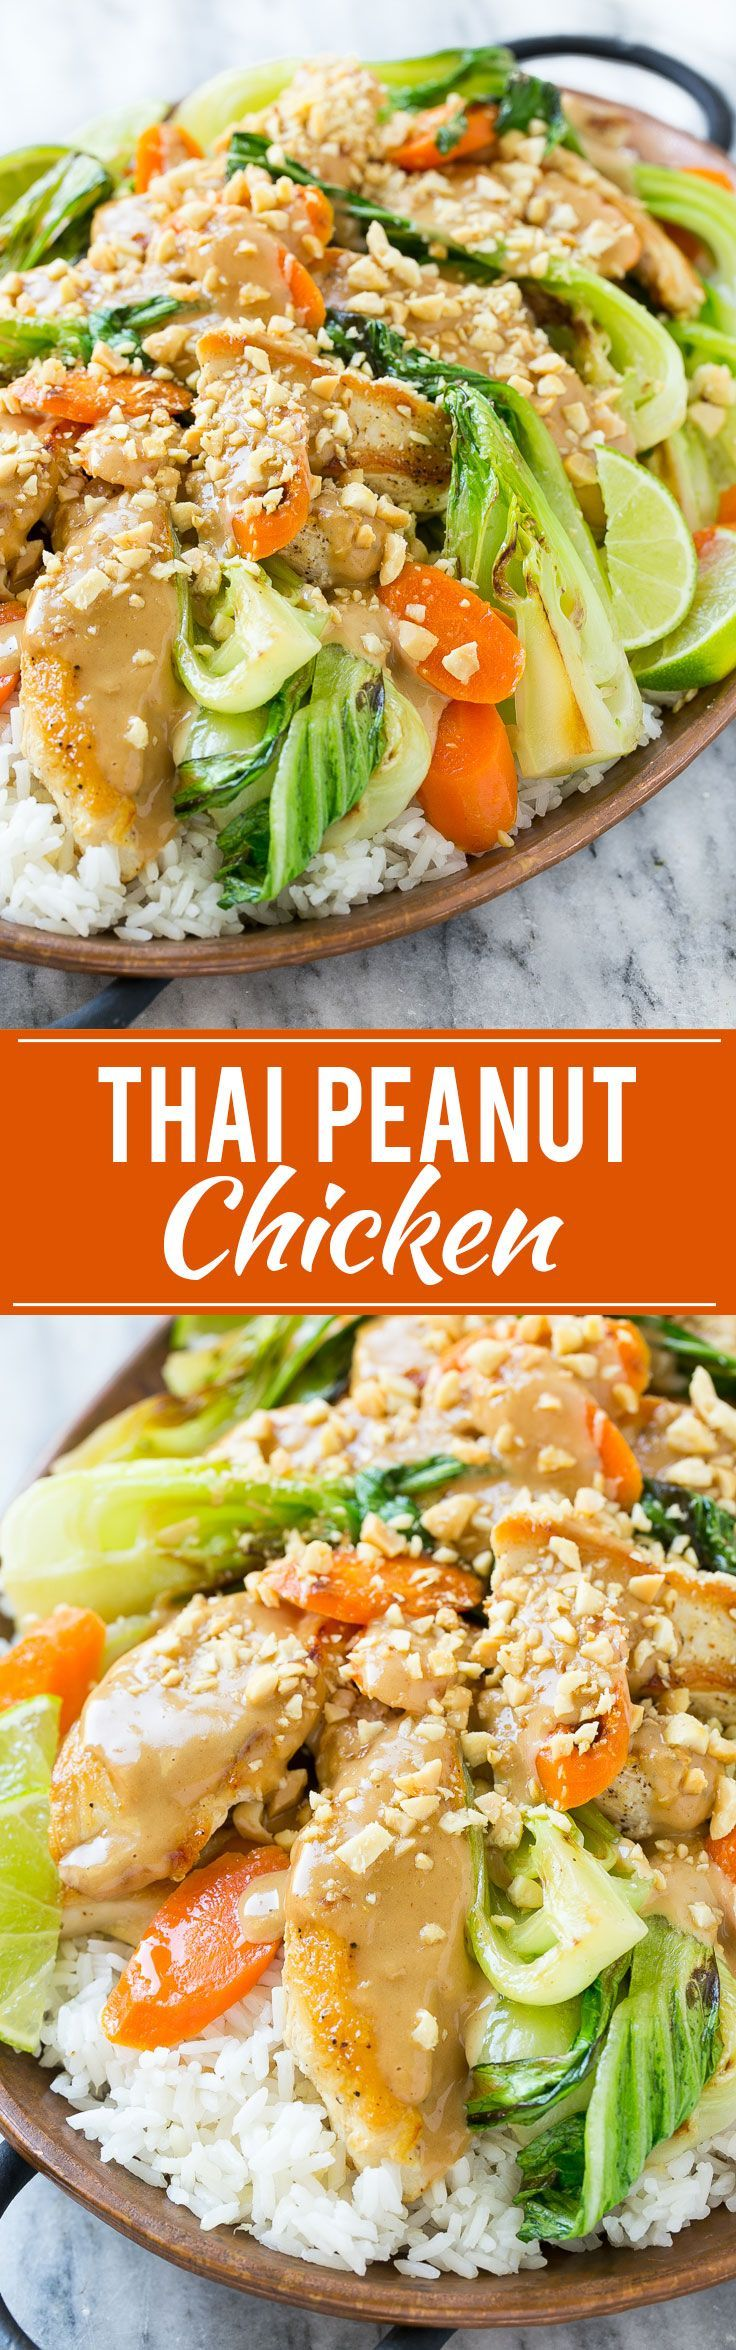 This recipe for Thai peanut chicken is a quick and easy stir fry with seared chicken and colorful vegetables, all covered in a homemade peanut sauce. Serve it with a side of rice for a complete meal that's ready in less than 30 minutes!